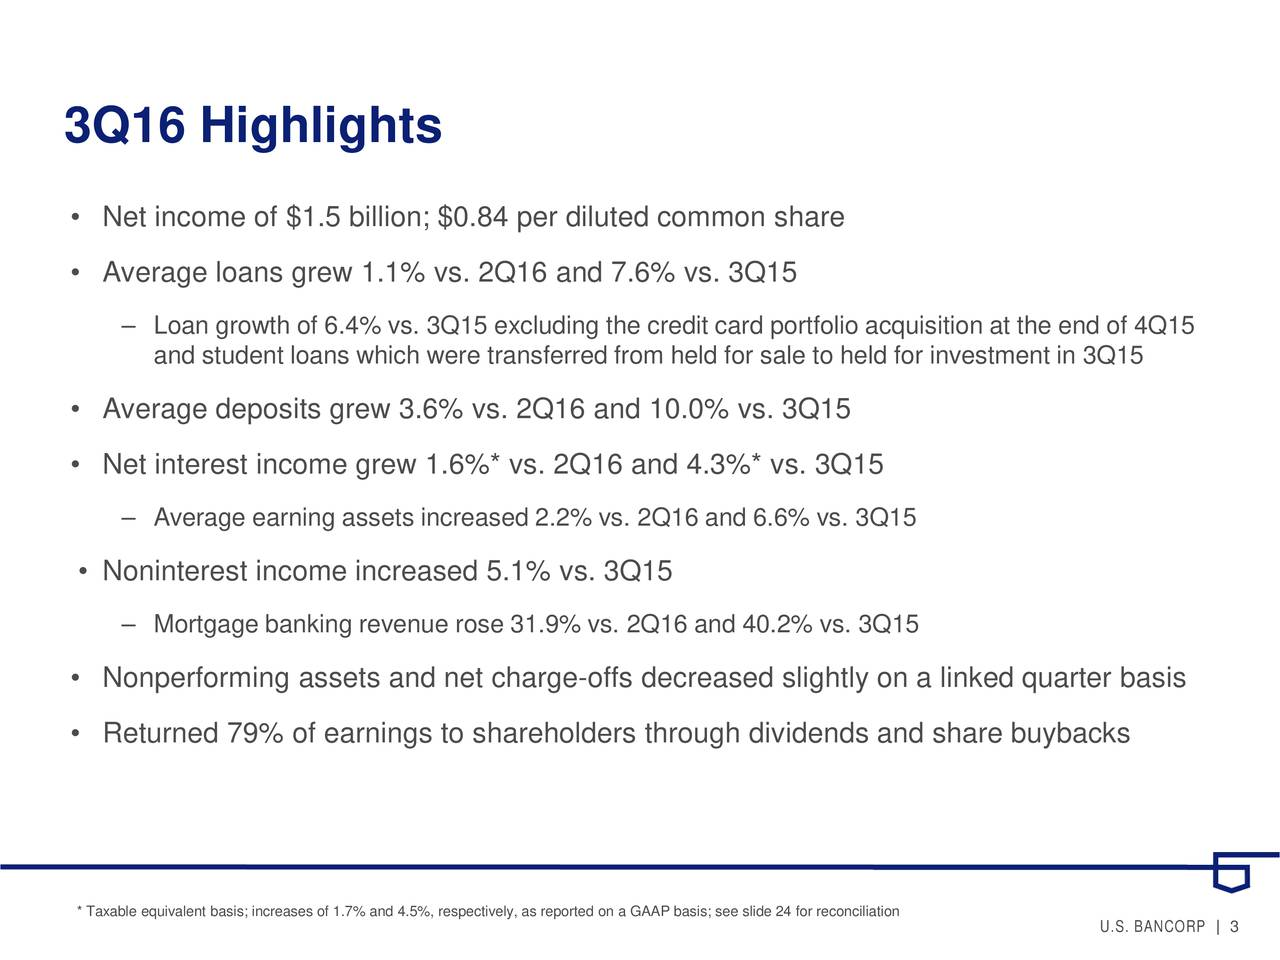 Net income of $1.5 billion; $0.84 per diluted common share Average loans grew 1.1% vs. 2Q16 and 7.6% vs. 3Q15 Loan growth of 6.4% vs. 3Q15 excluding the credit card portfolio acquisition at the end of 4Q15 and student loans which were transferred from held for sale to held for investmentin 3Q15 Average deposits grew 3.6% vs. 2Q16 and 10.0% vs. 3Q15 Net interest income grew 1.6%* vs. 2Q16 and 4.3%* vs. 3Q15 Average earning assets increased 2.2%vs. 2Q16 and 6.6% vs. 3Q15 Noninterest income increased 5.1% vs. 3Q15 Mortgage banking revenue rose 31.9%vs. 2Q16 and 40.2% vs. 3Q15 Nonperforming assets and net charge-offs decreased slightly on a linked quarter basis Returned 79% of earnings to shareholders through dividends and share buybacks * Taxable equivalent basis; increases of 1.7% and 4.5%, respectively,as reported on a GAAP basis; see slide 24 for reconciliation U.S. BANCOR3  